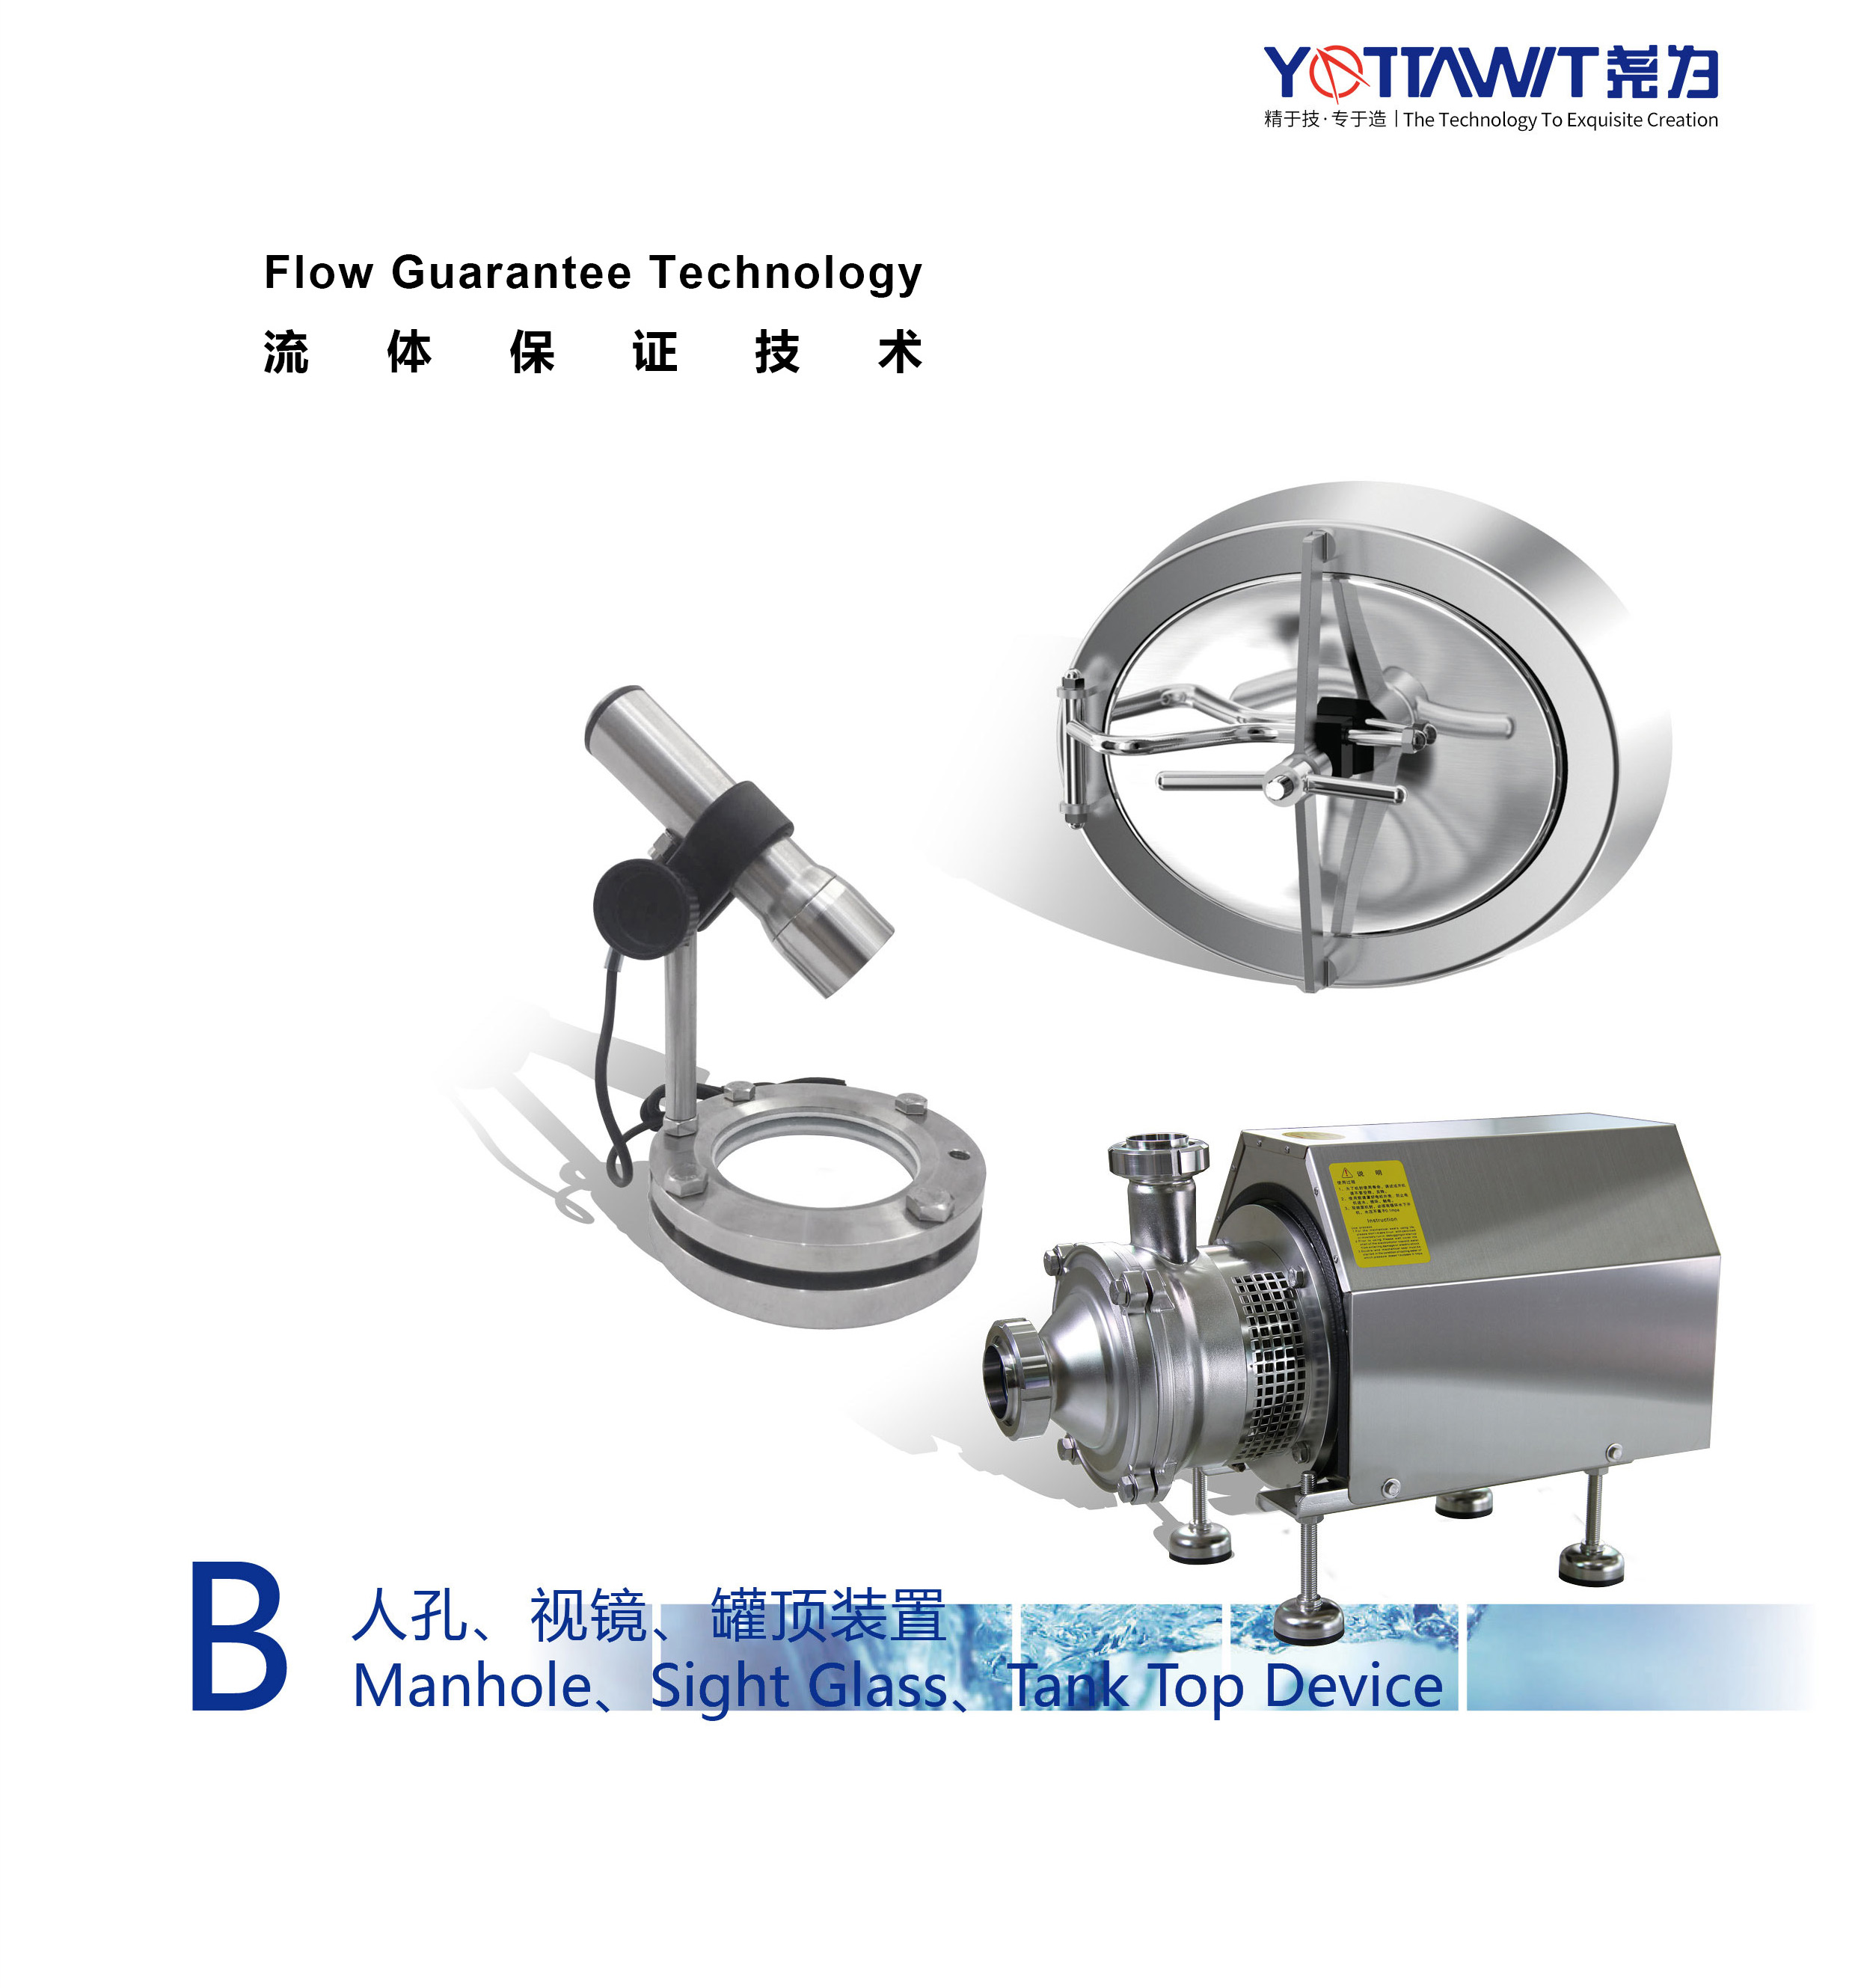 Flow Guarantee Technology Products流体保证技术产品